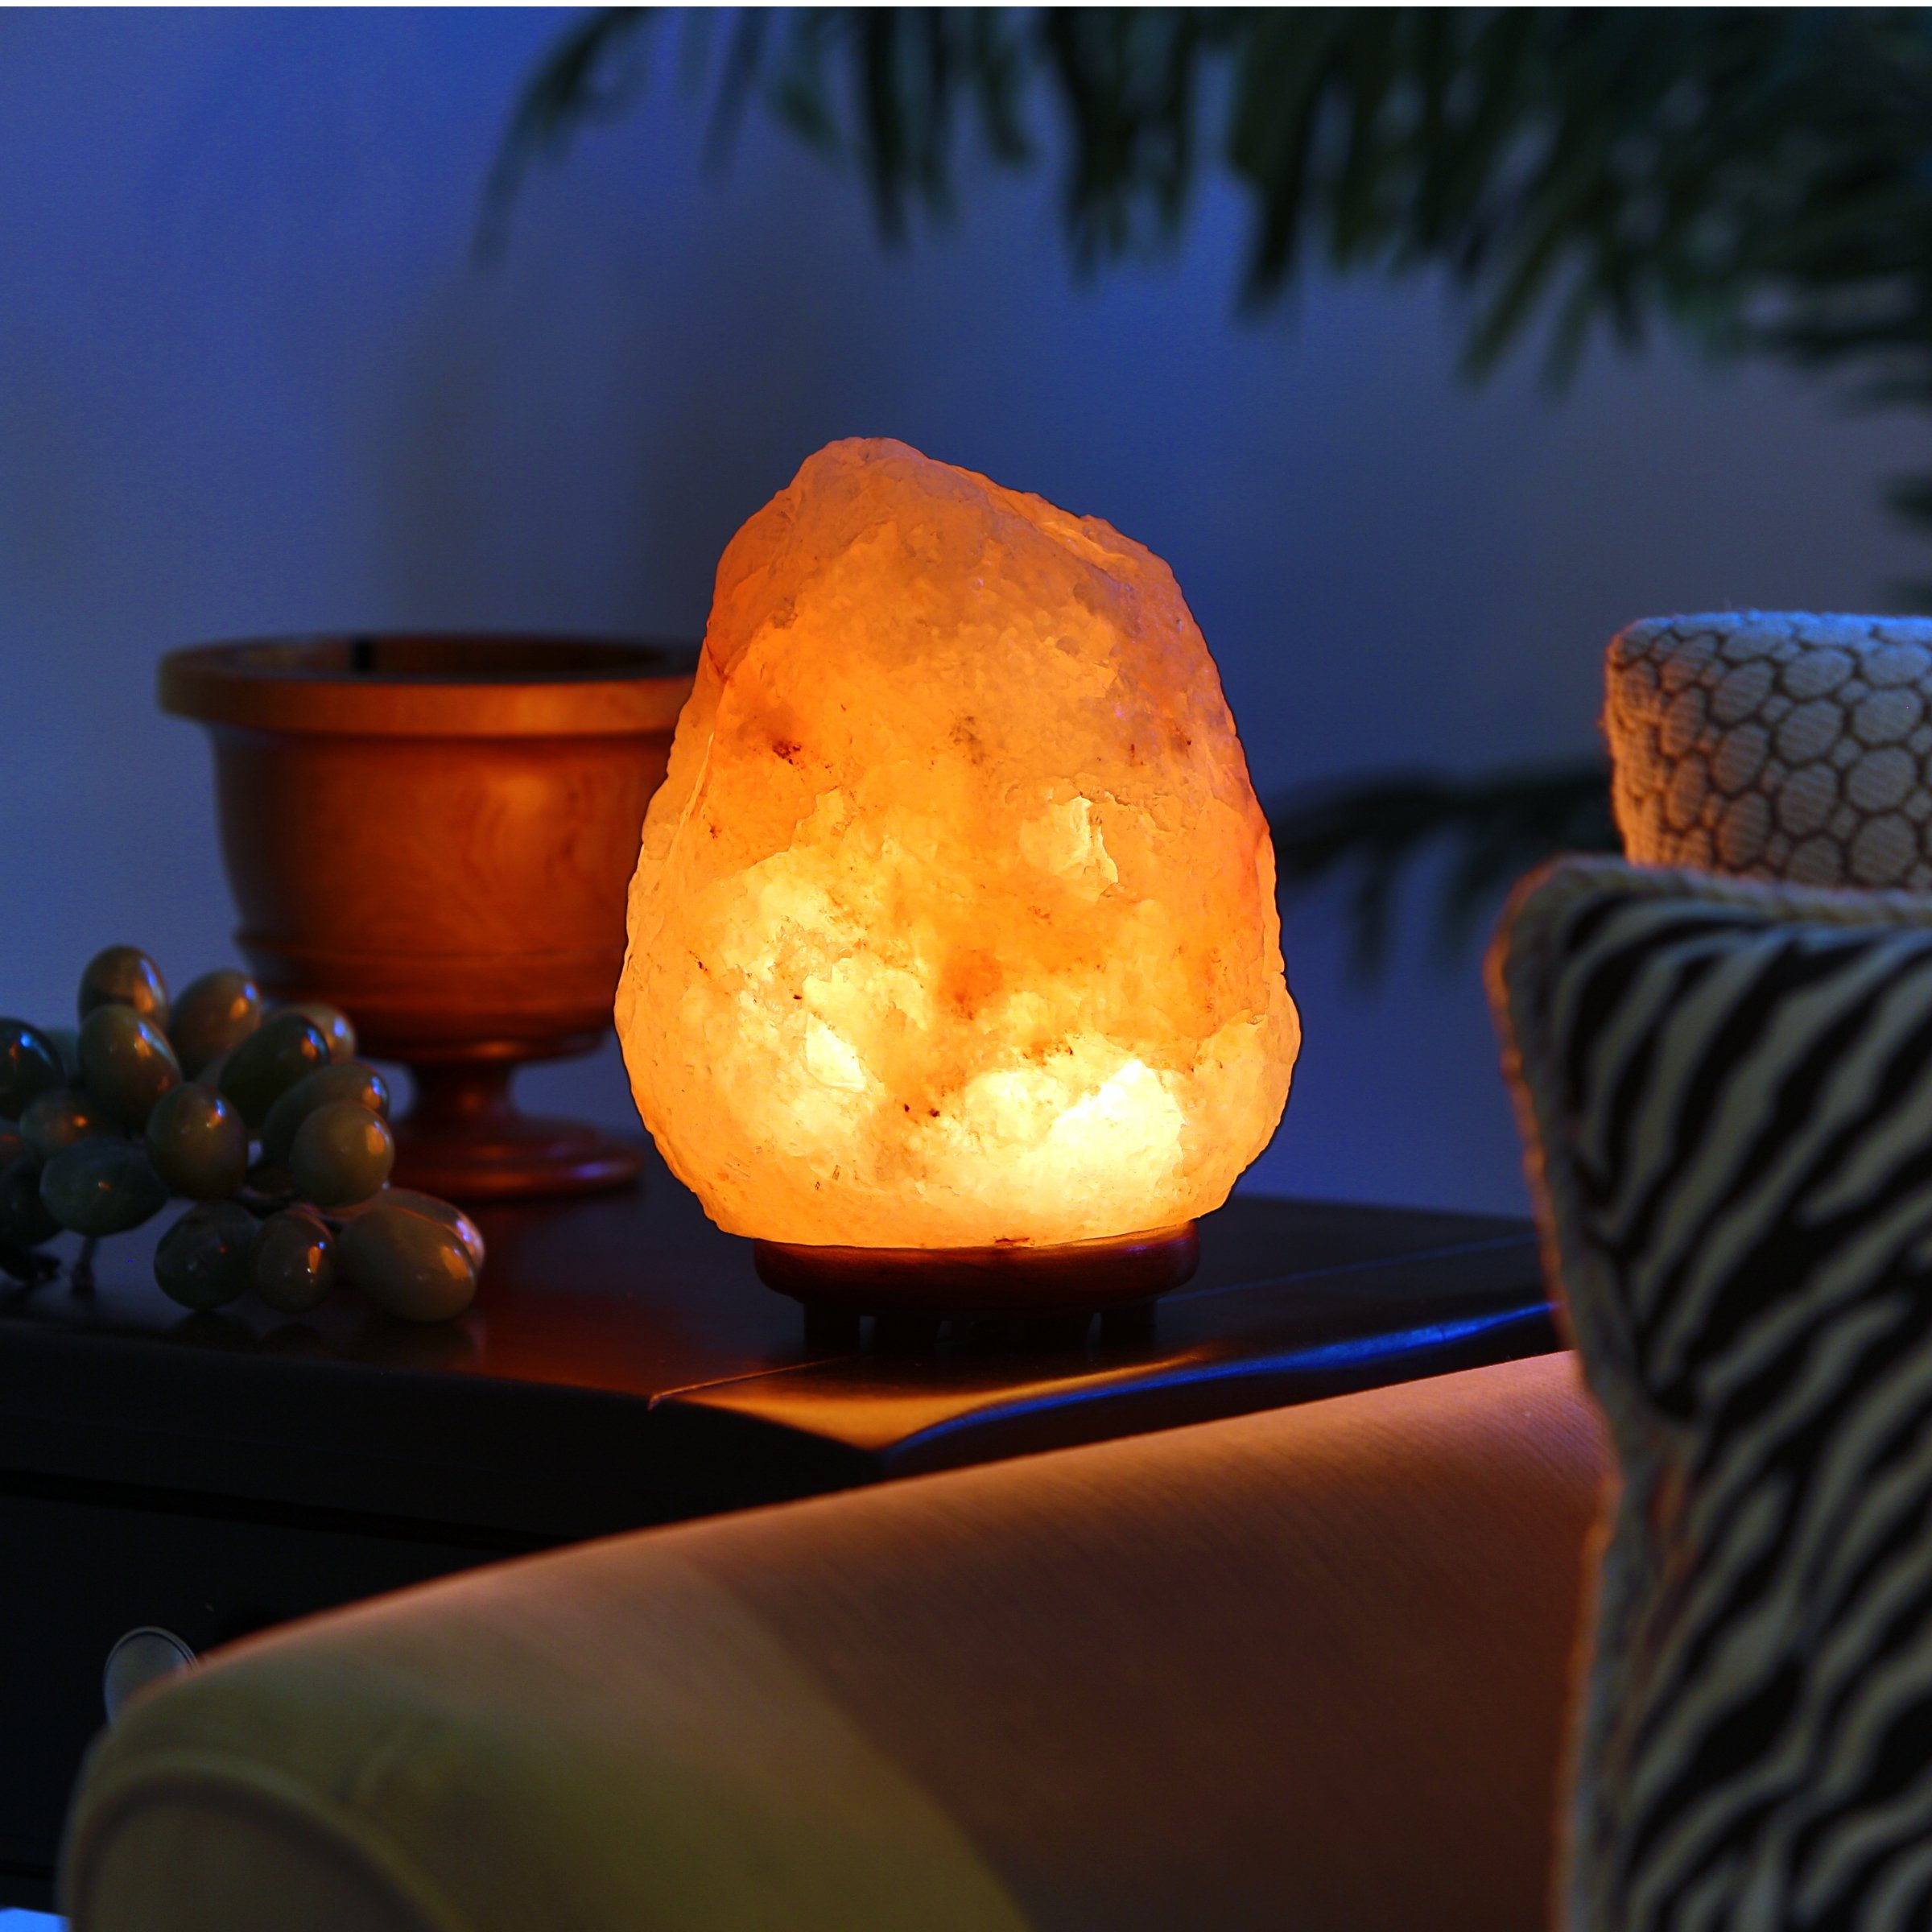 Mineralamp NSL-101 Natural Himalayan Hand Carved Salt Lamp with Indian Rosewood Base, Bulb And Dimmer Control, Medium Size, 8-11 lbs, 7.5-10'' Height by Mineralamp (Image #3)